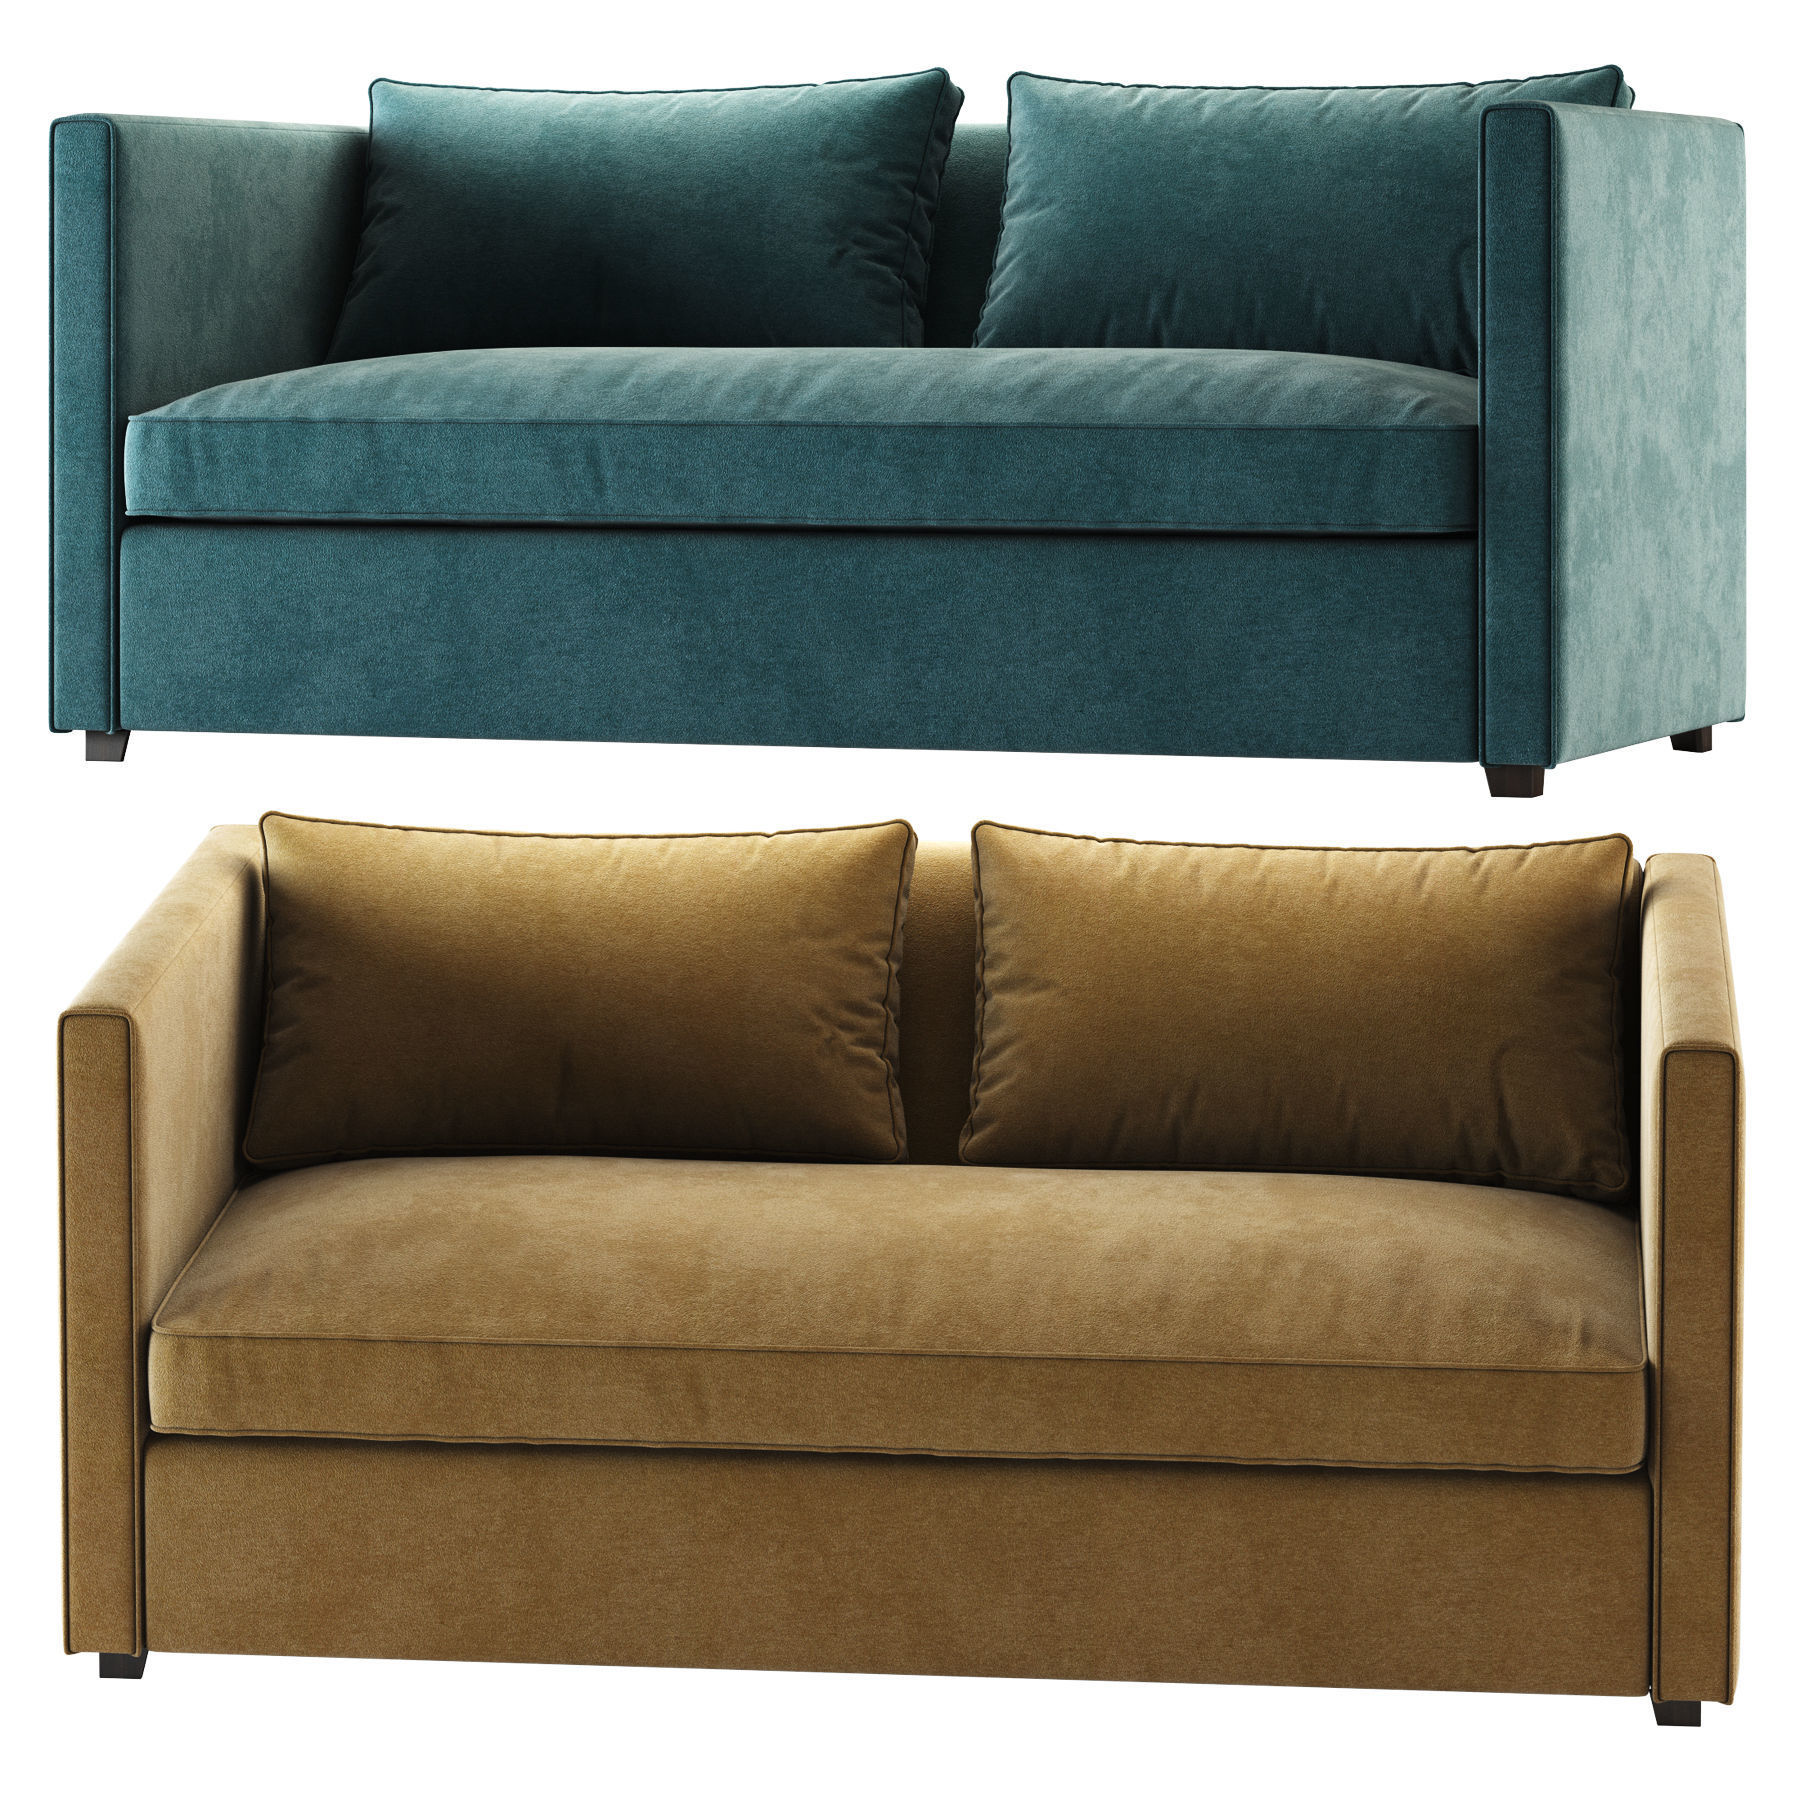 Crate and Barrel Torrey Sofa